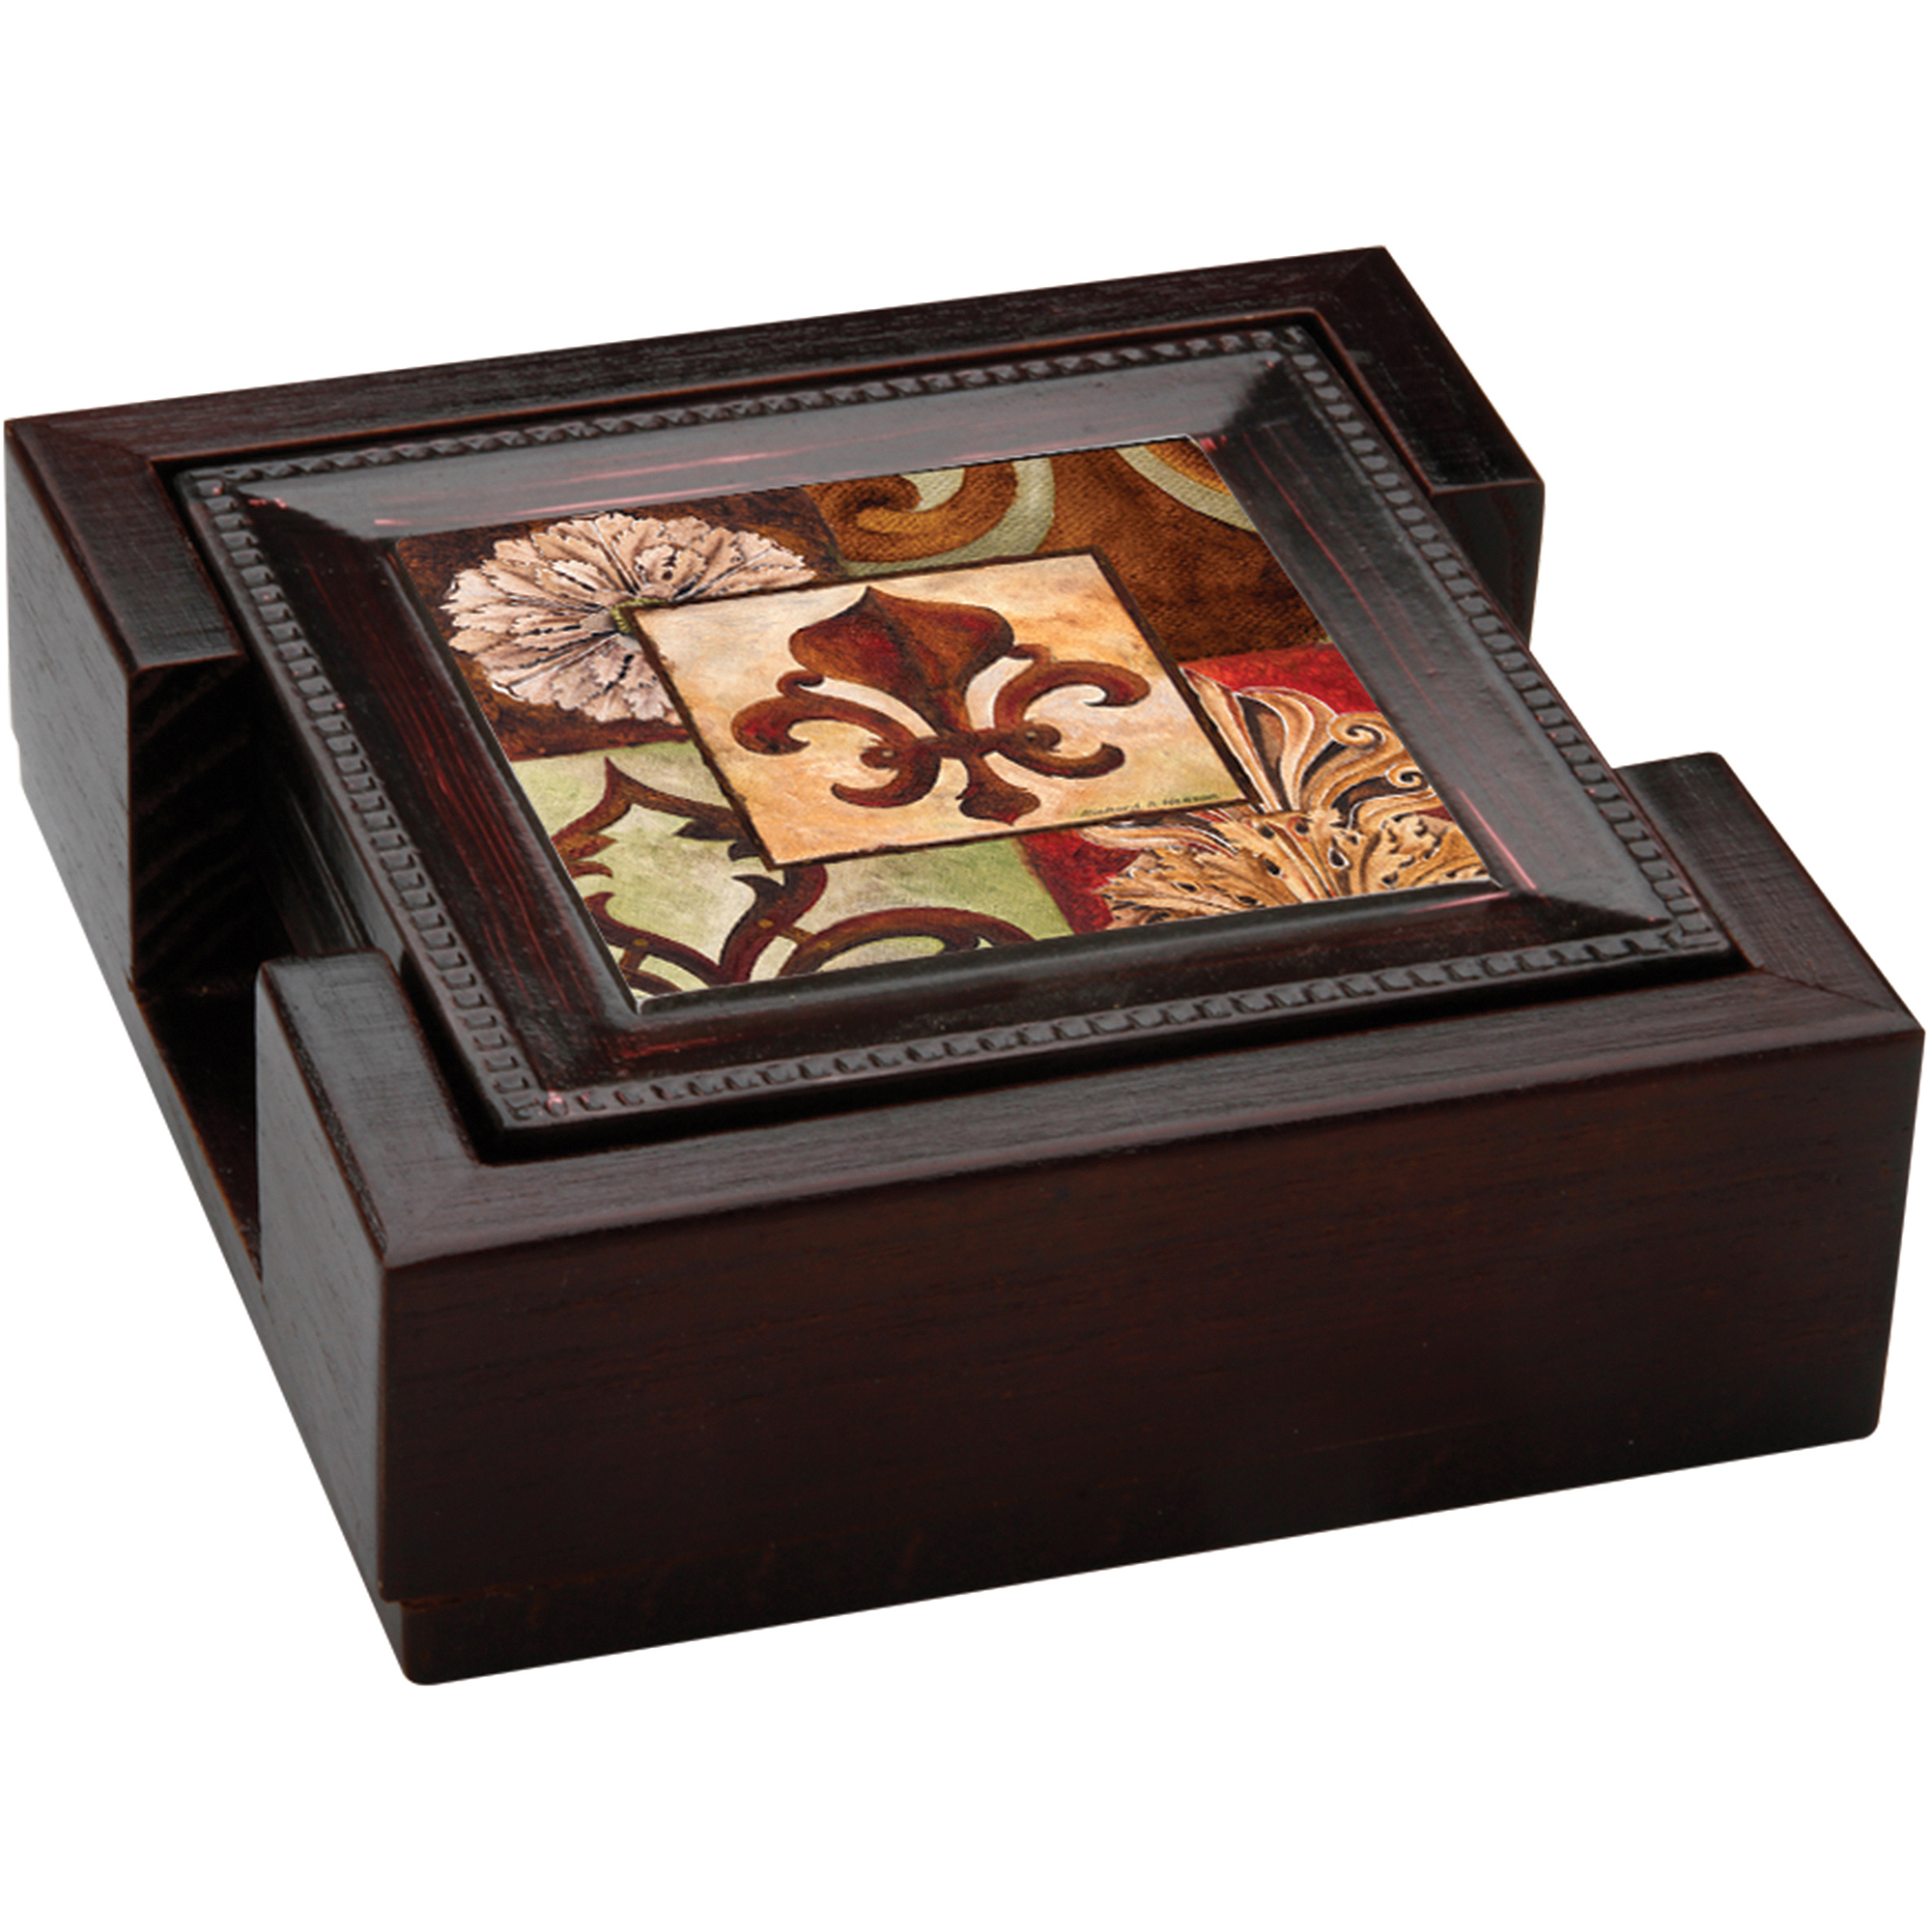 Thirstystone Ambiance Gift Set, Facade II